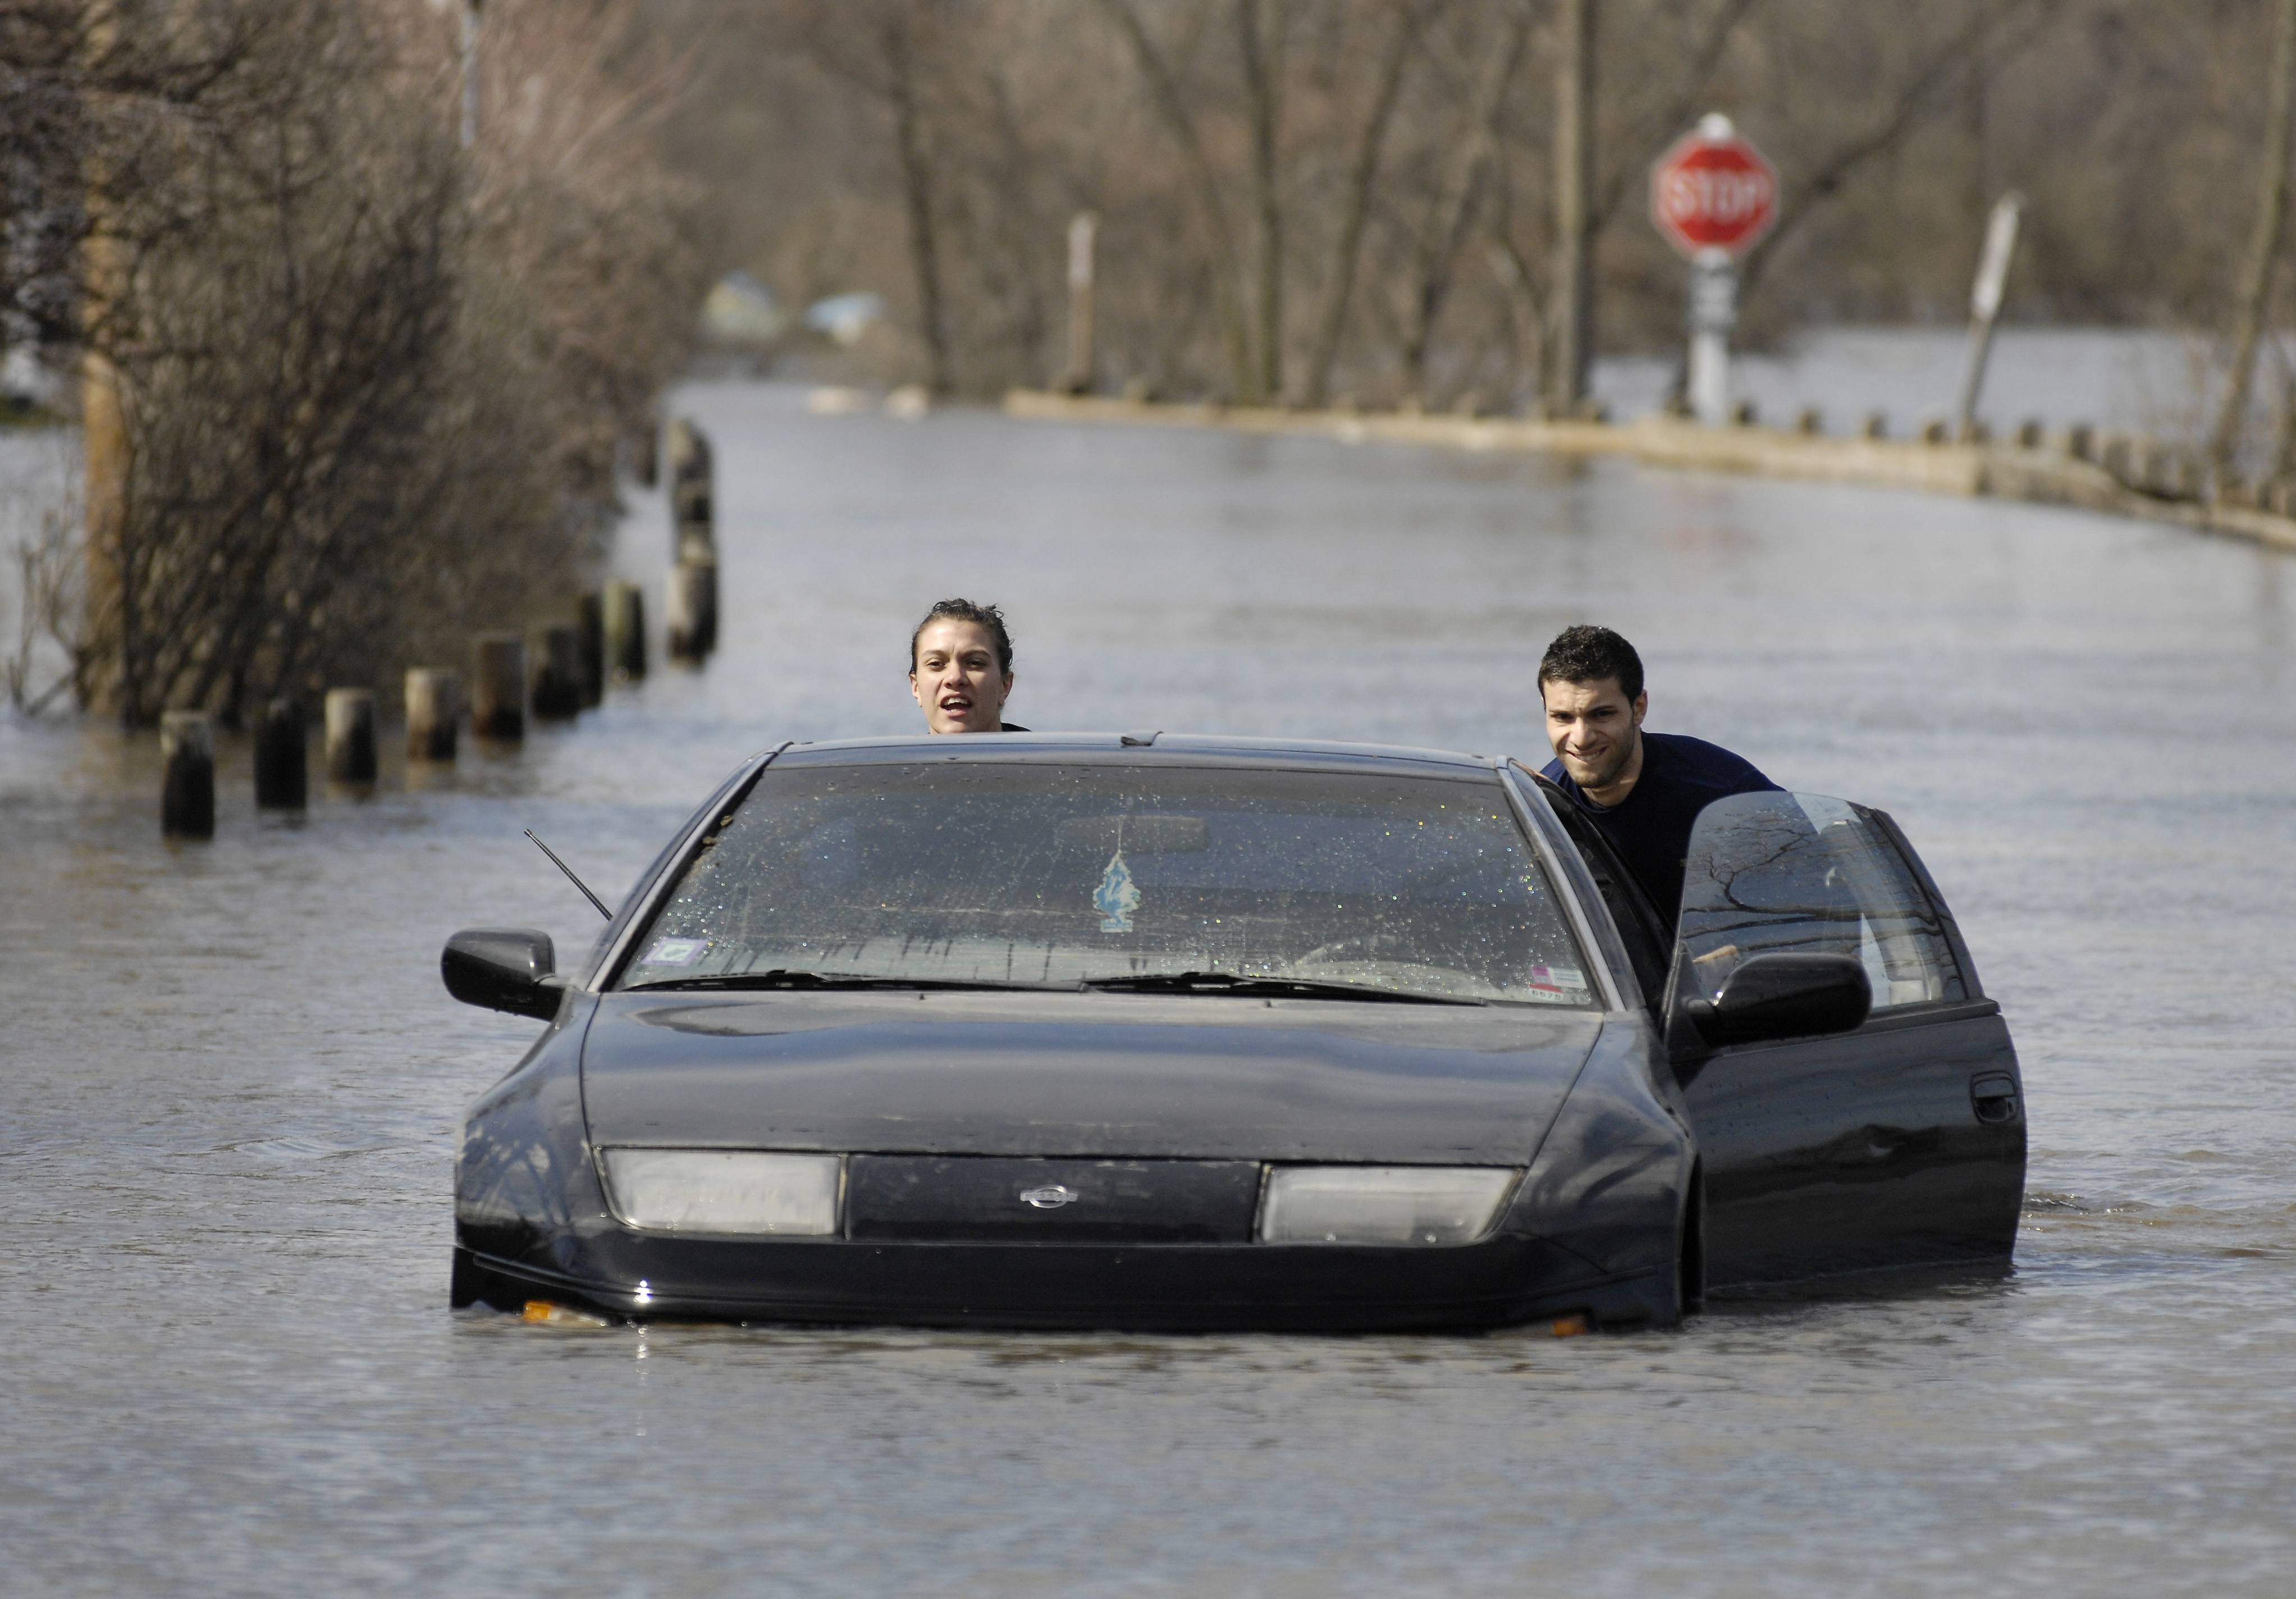 Ashley and Victor Atalla push the second of their two cars out of the floodwaters at Four Lakes subdivision in Lisle, Monday. The Atalla's were forced to park in the low lying area after the raised parking lot at the Towers at Four Lakes affiliated with their apartment building was full. The couple has only lived in their apartment for one year and was unaware of the potential for flooding in the parking lot. The couple plans to try and salvage their cars.